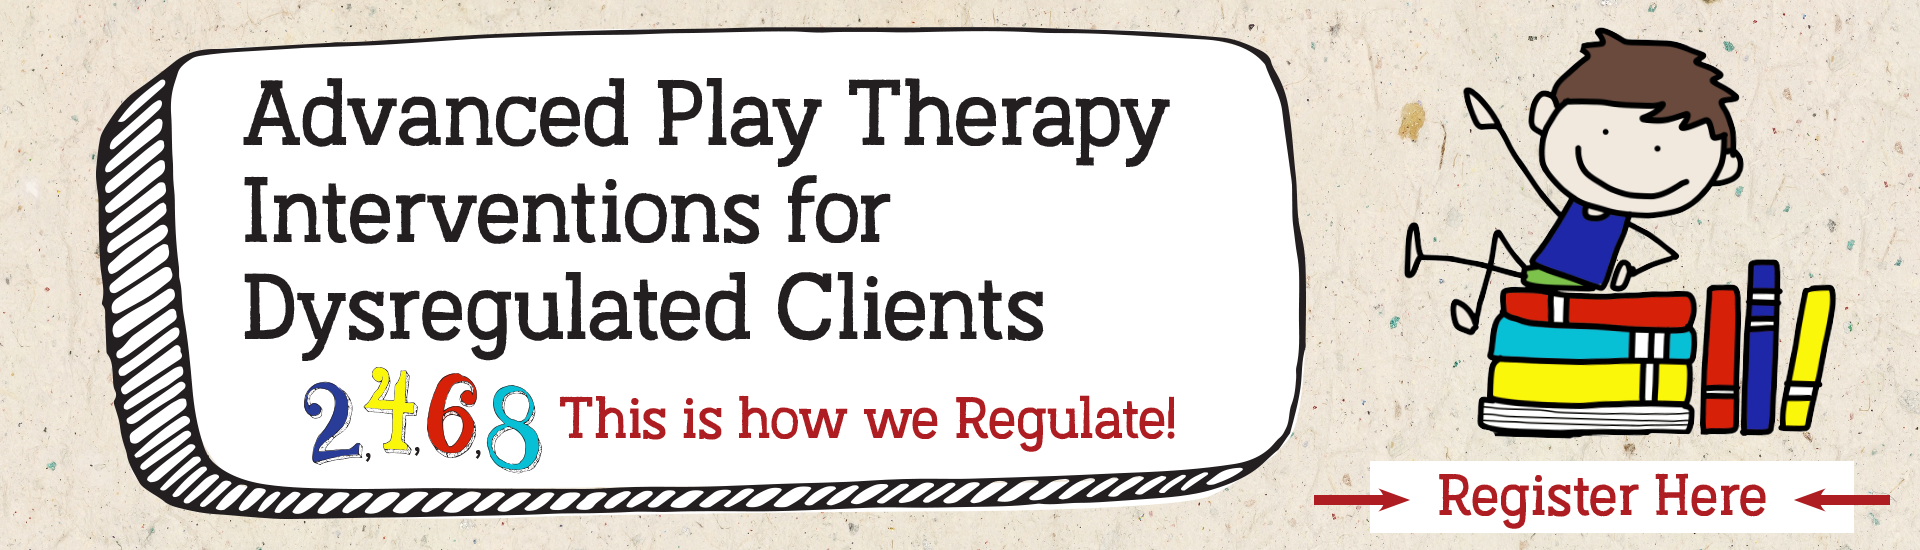 Advanced Play Therapy Interventions for Dysregulated Clients: 2,4,6,8 This is how we Regulate!